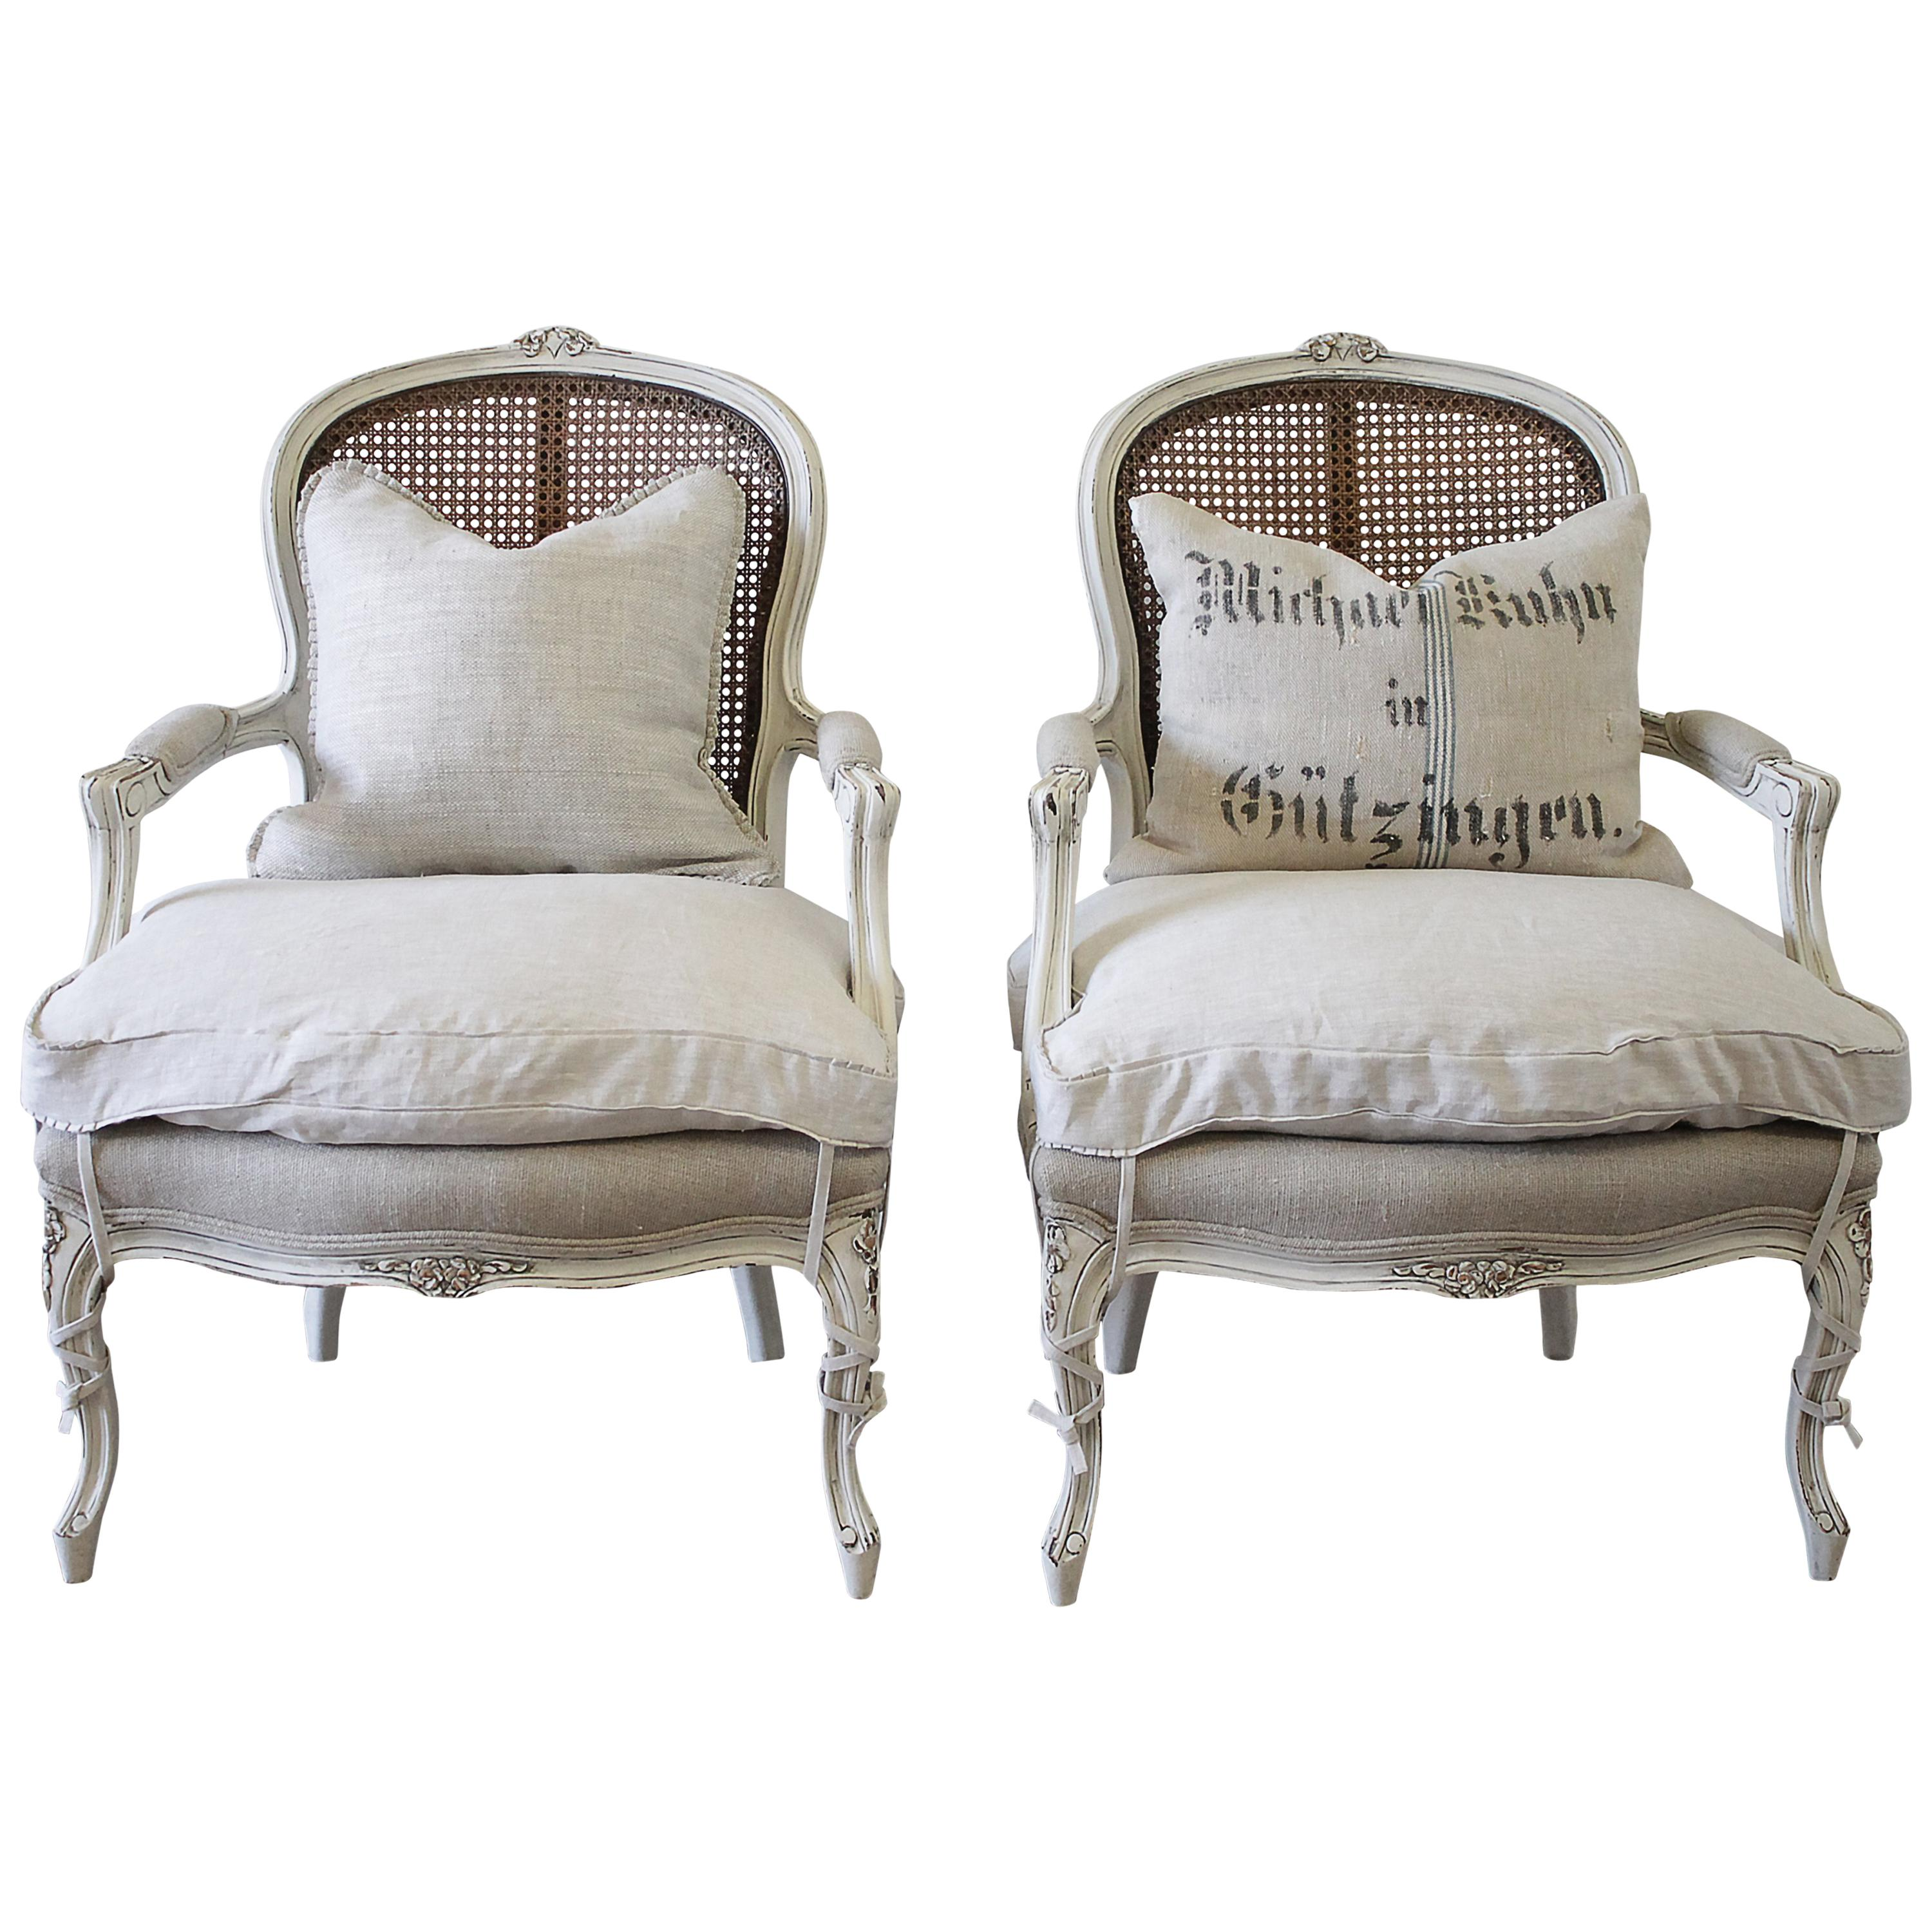 cane back chairs for sale wicker new zealand 20th century pair of painted louis xv style